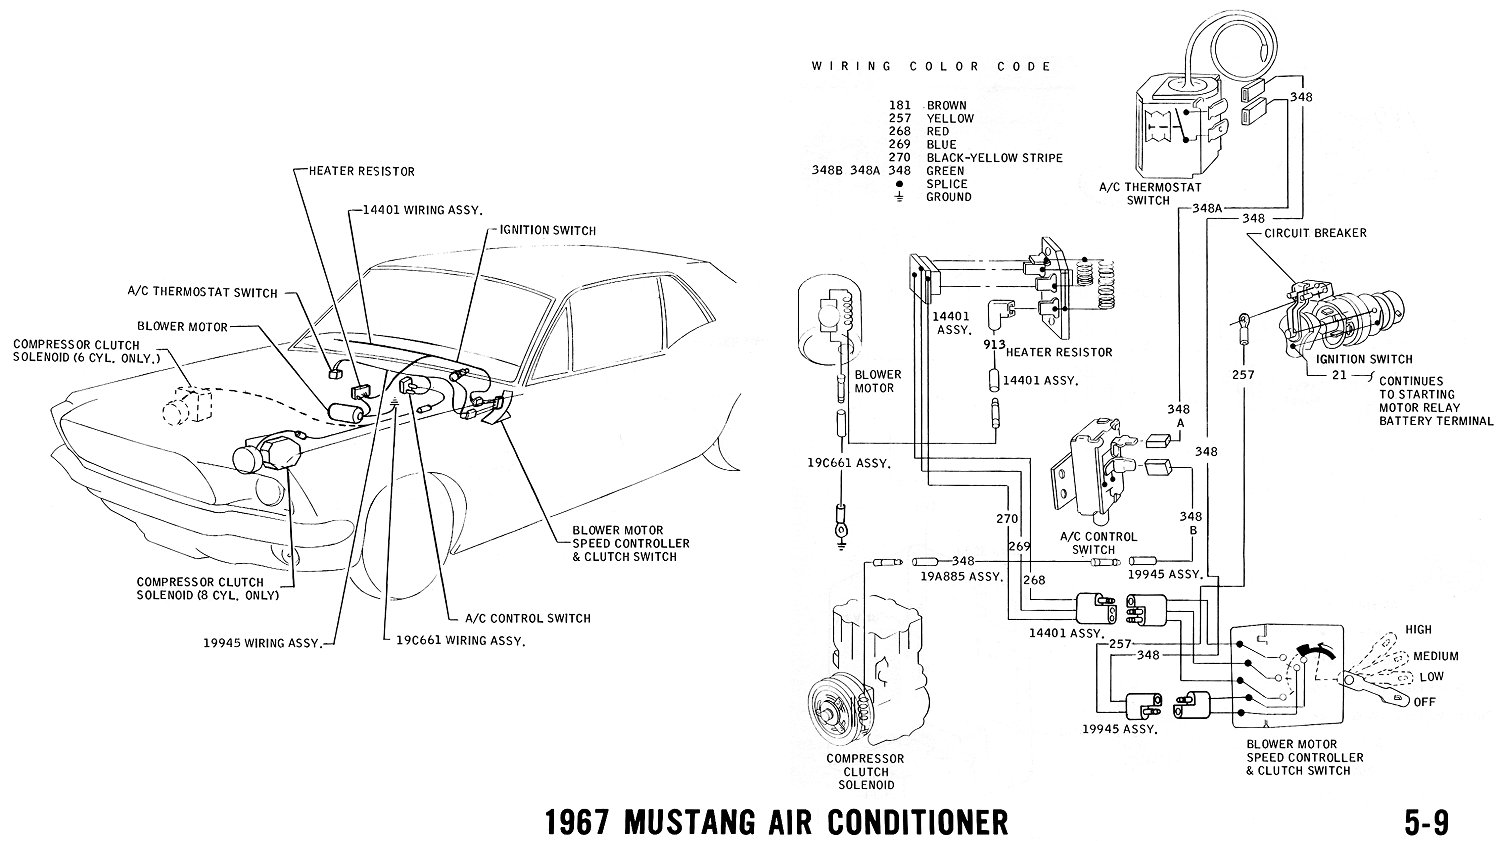 67ac 1970 mustang ac control wiring diagram 1970 ford alternator wiring 1967 mustang instrument cluster wiring diagram at readyjetset.co